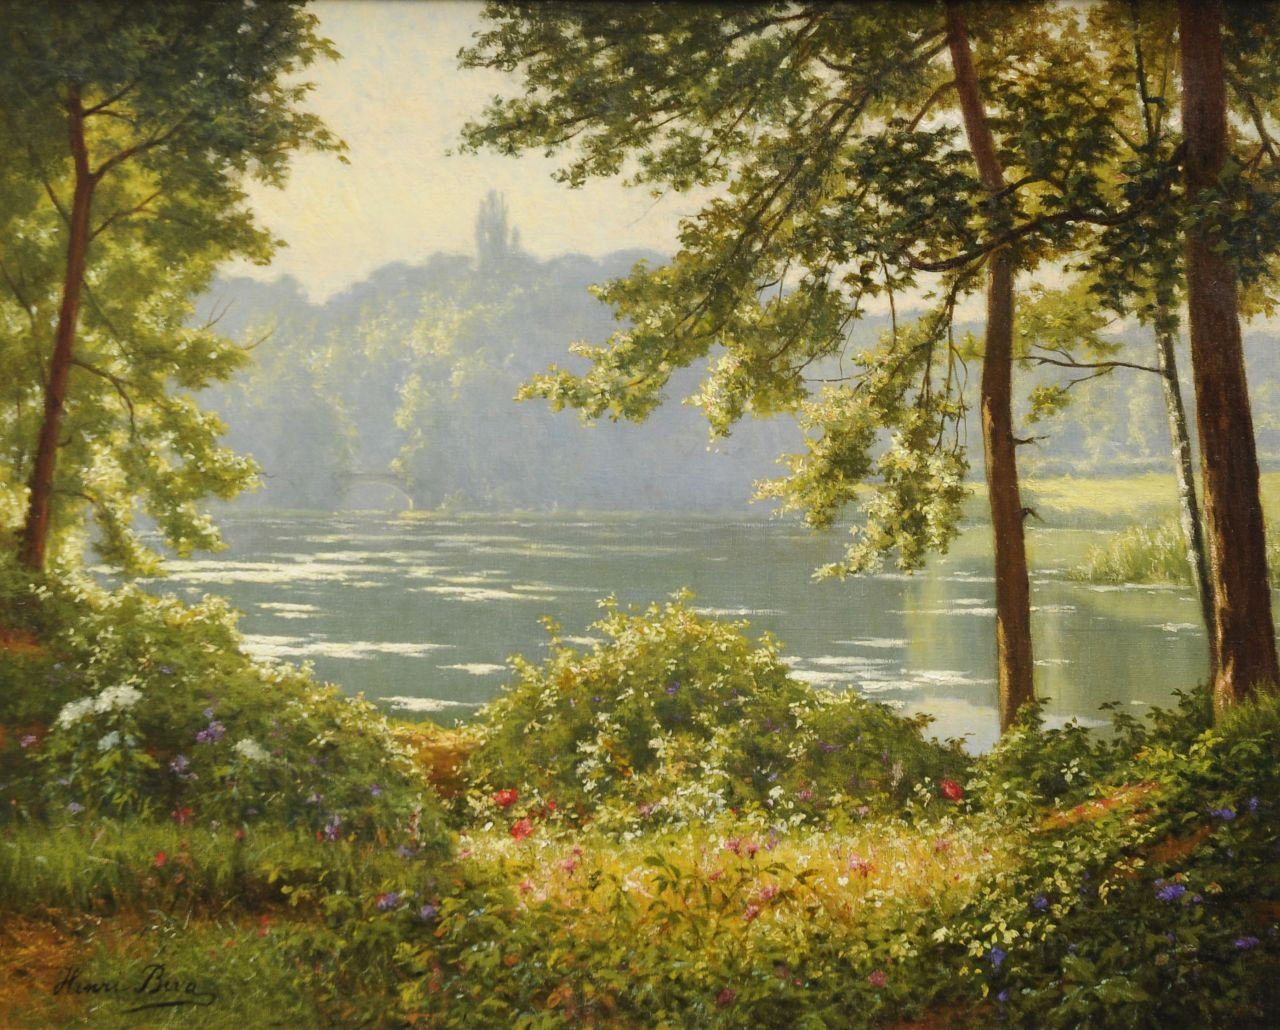 Henri Biva | Daybreak at the lake, oil on canvas, 65.5 x 81.3 cm, signed l.l.